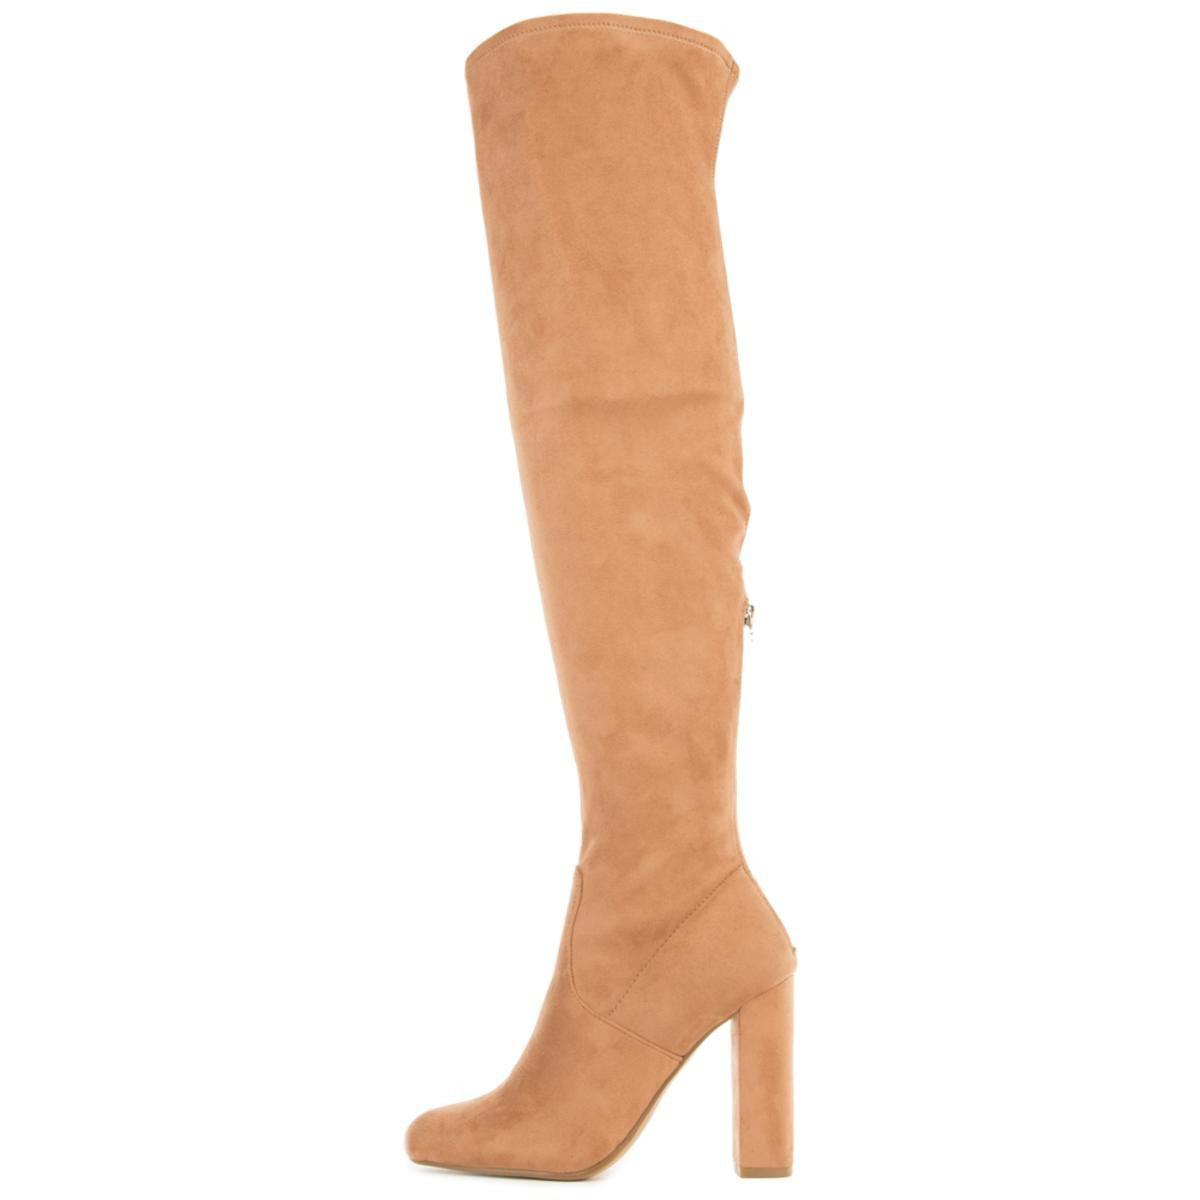 buy cheap order the sale of shoes Emotions Camel Thigh High Heeled Boots